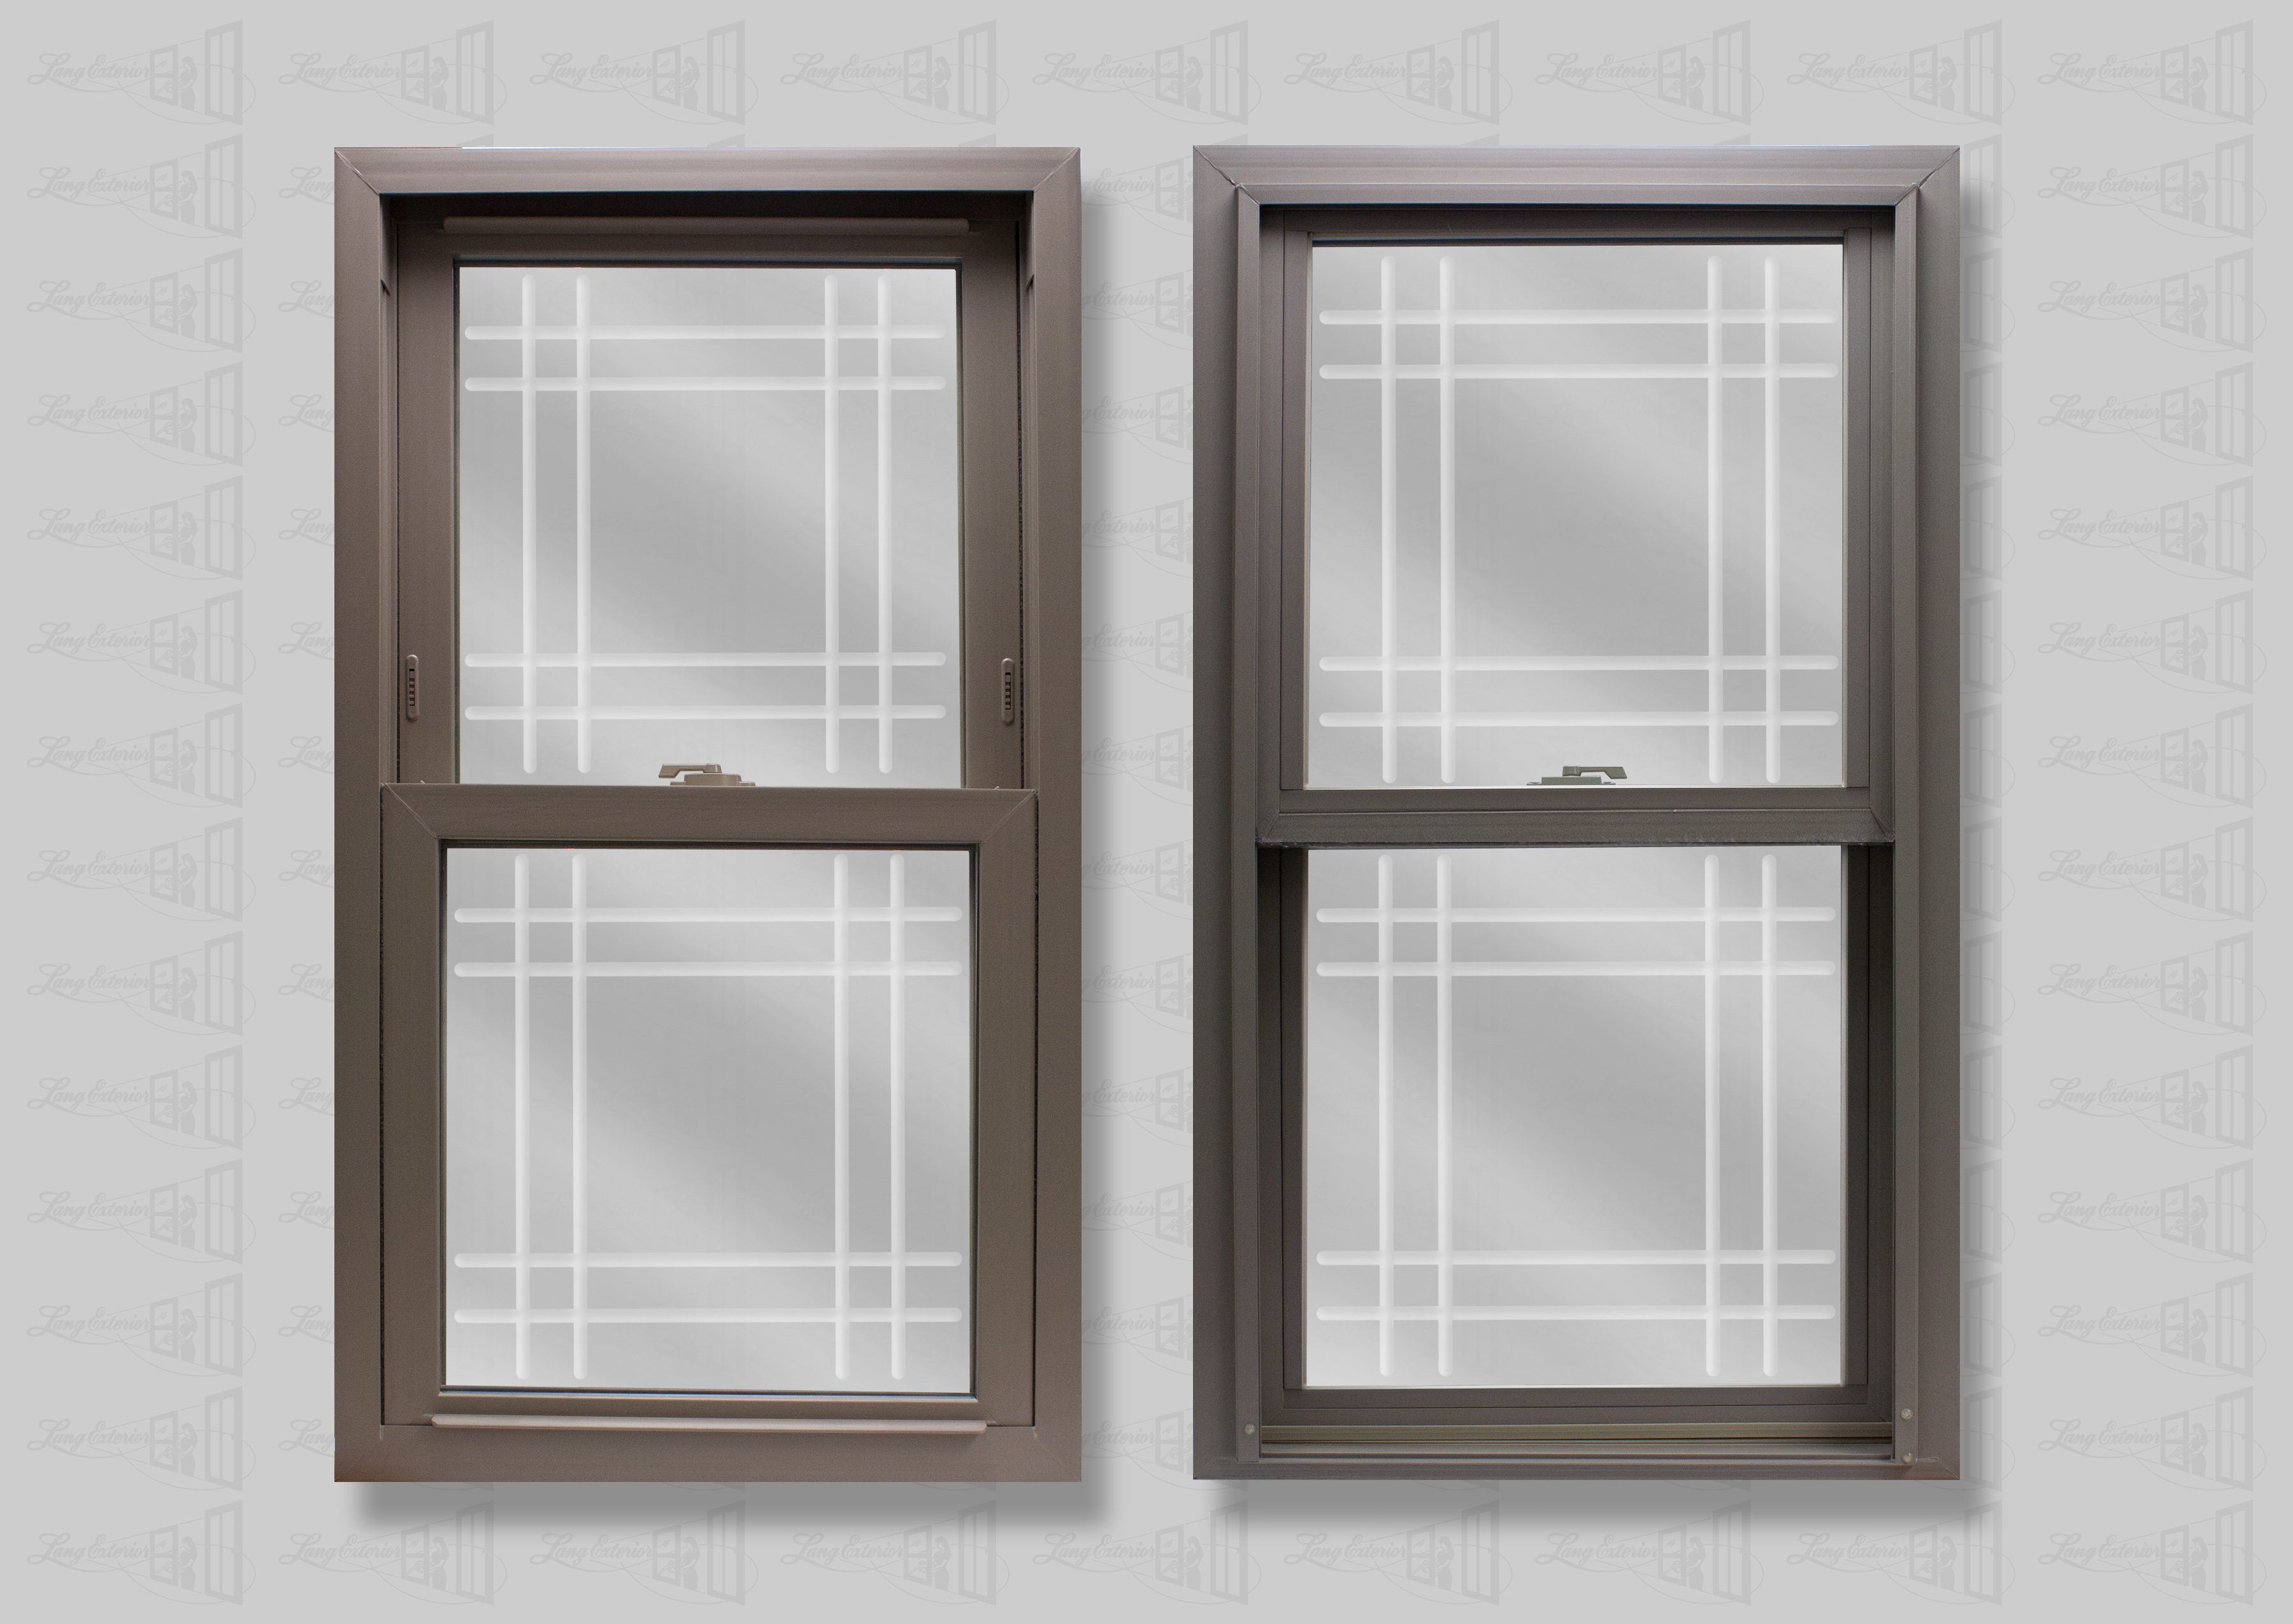 lang exterior clay powerweld double hung double prarie v-groove